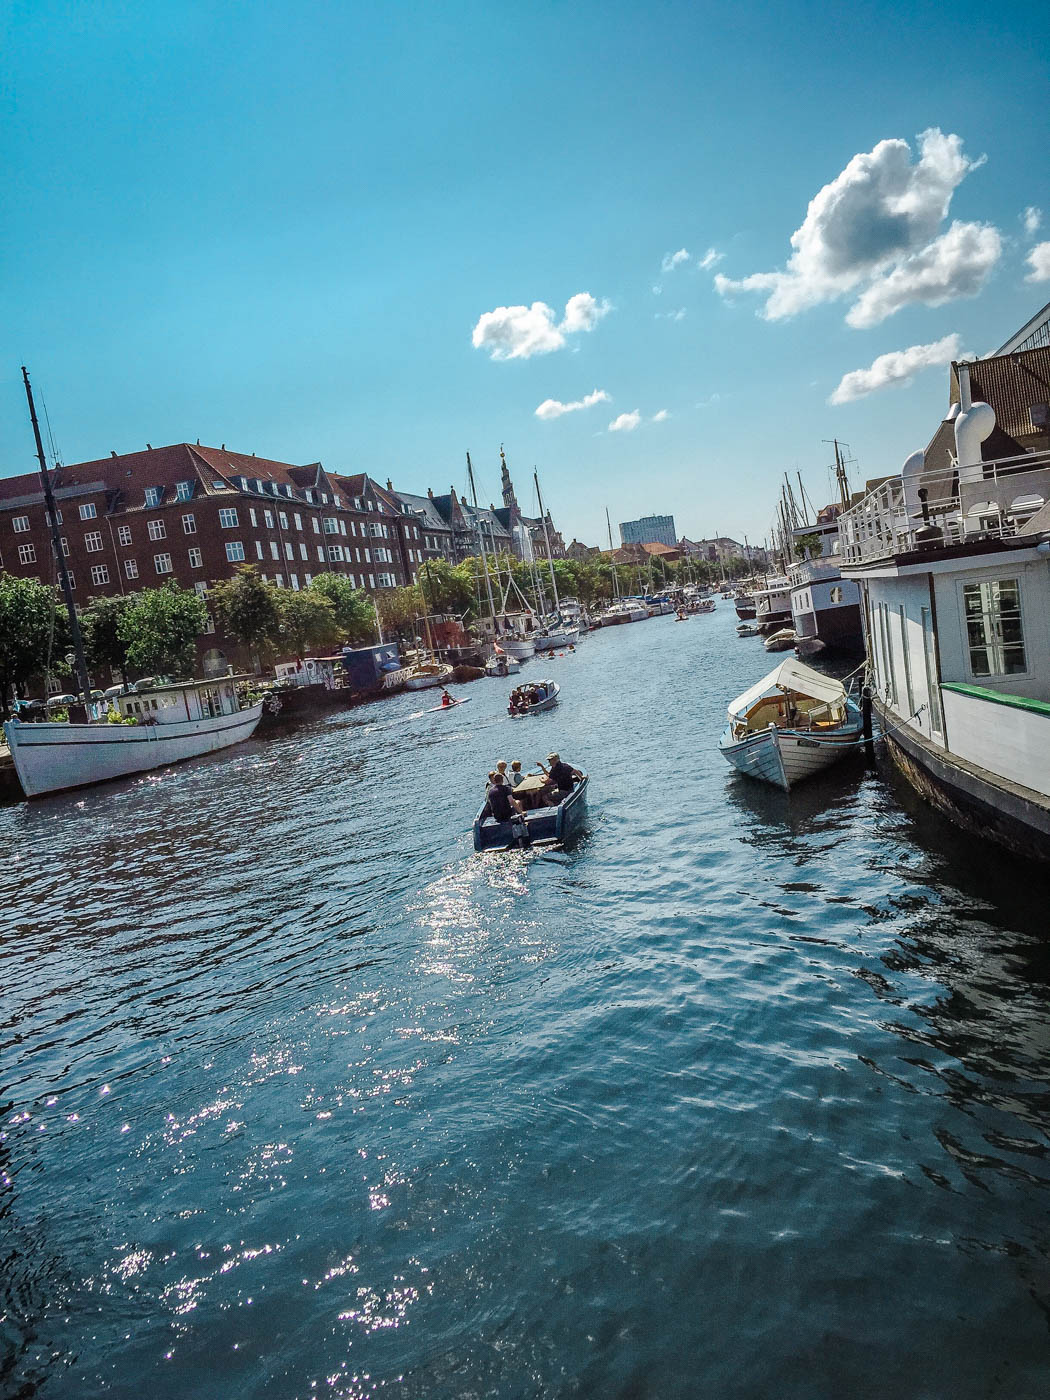 Summer Days by the Canal - Three Days in Copenhagen #traveldestinations #travel #denmark